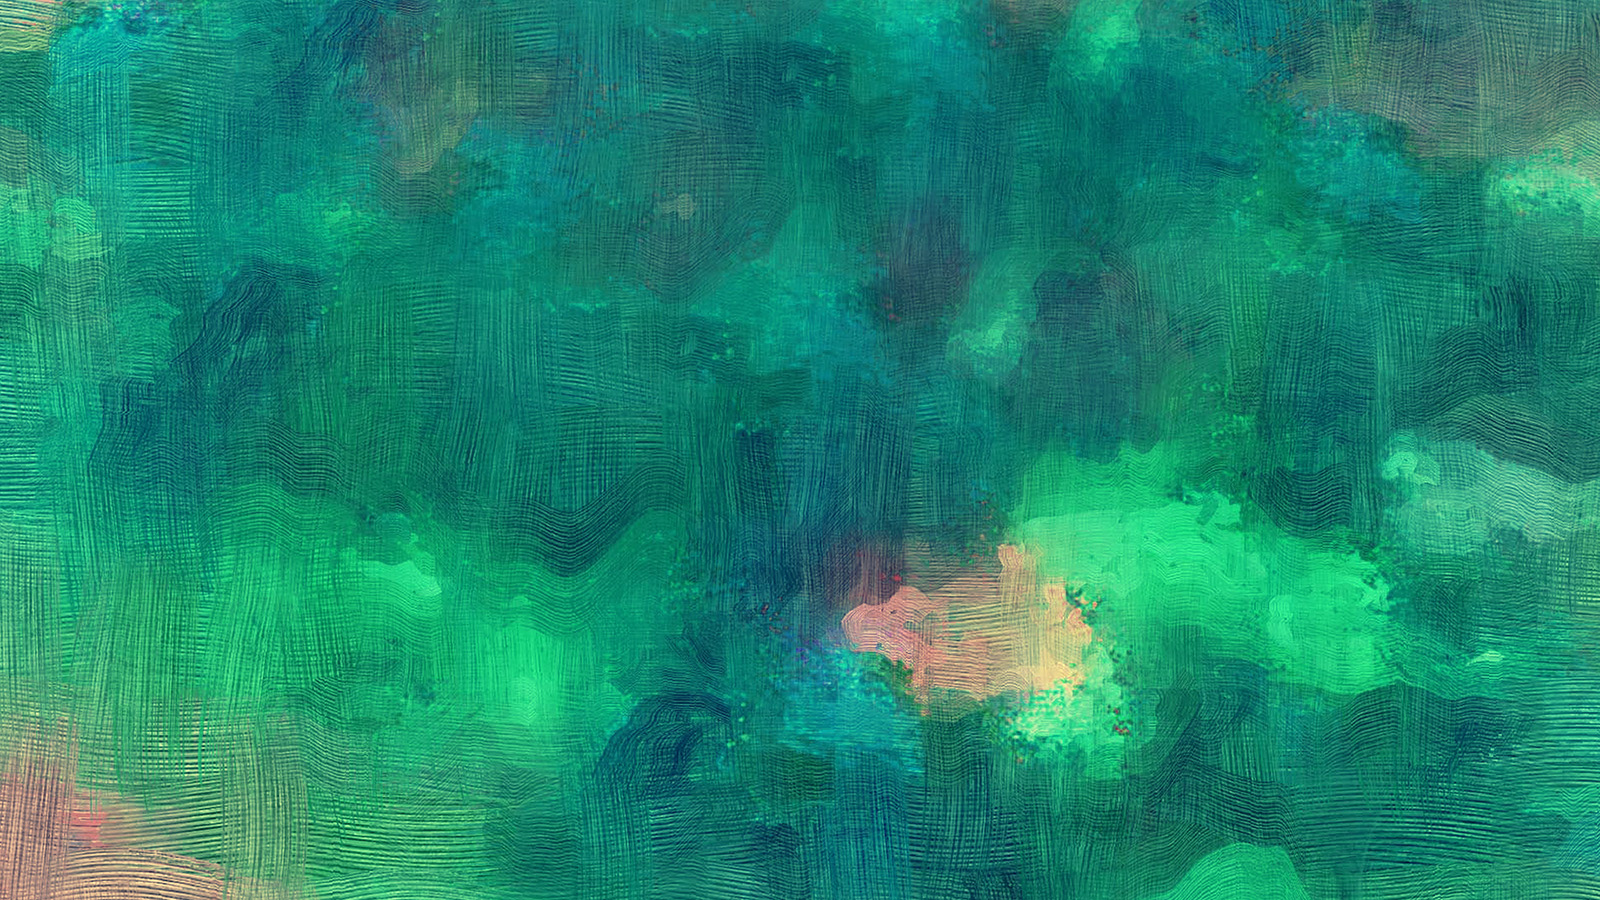 vl23-samsung-galaxy-green-texture-art-oil-painting-pattern ...